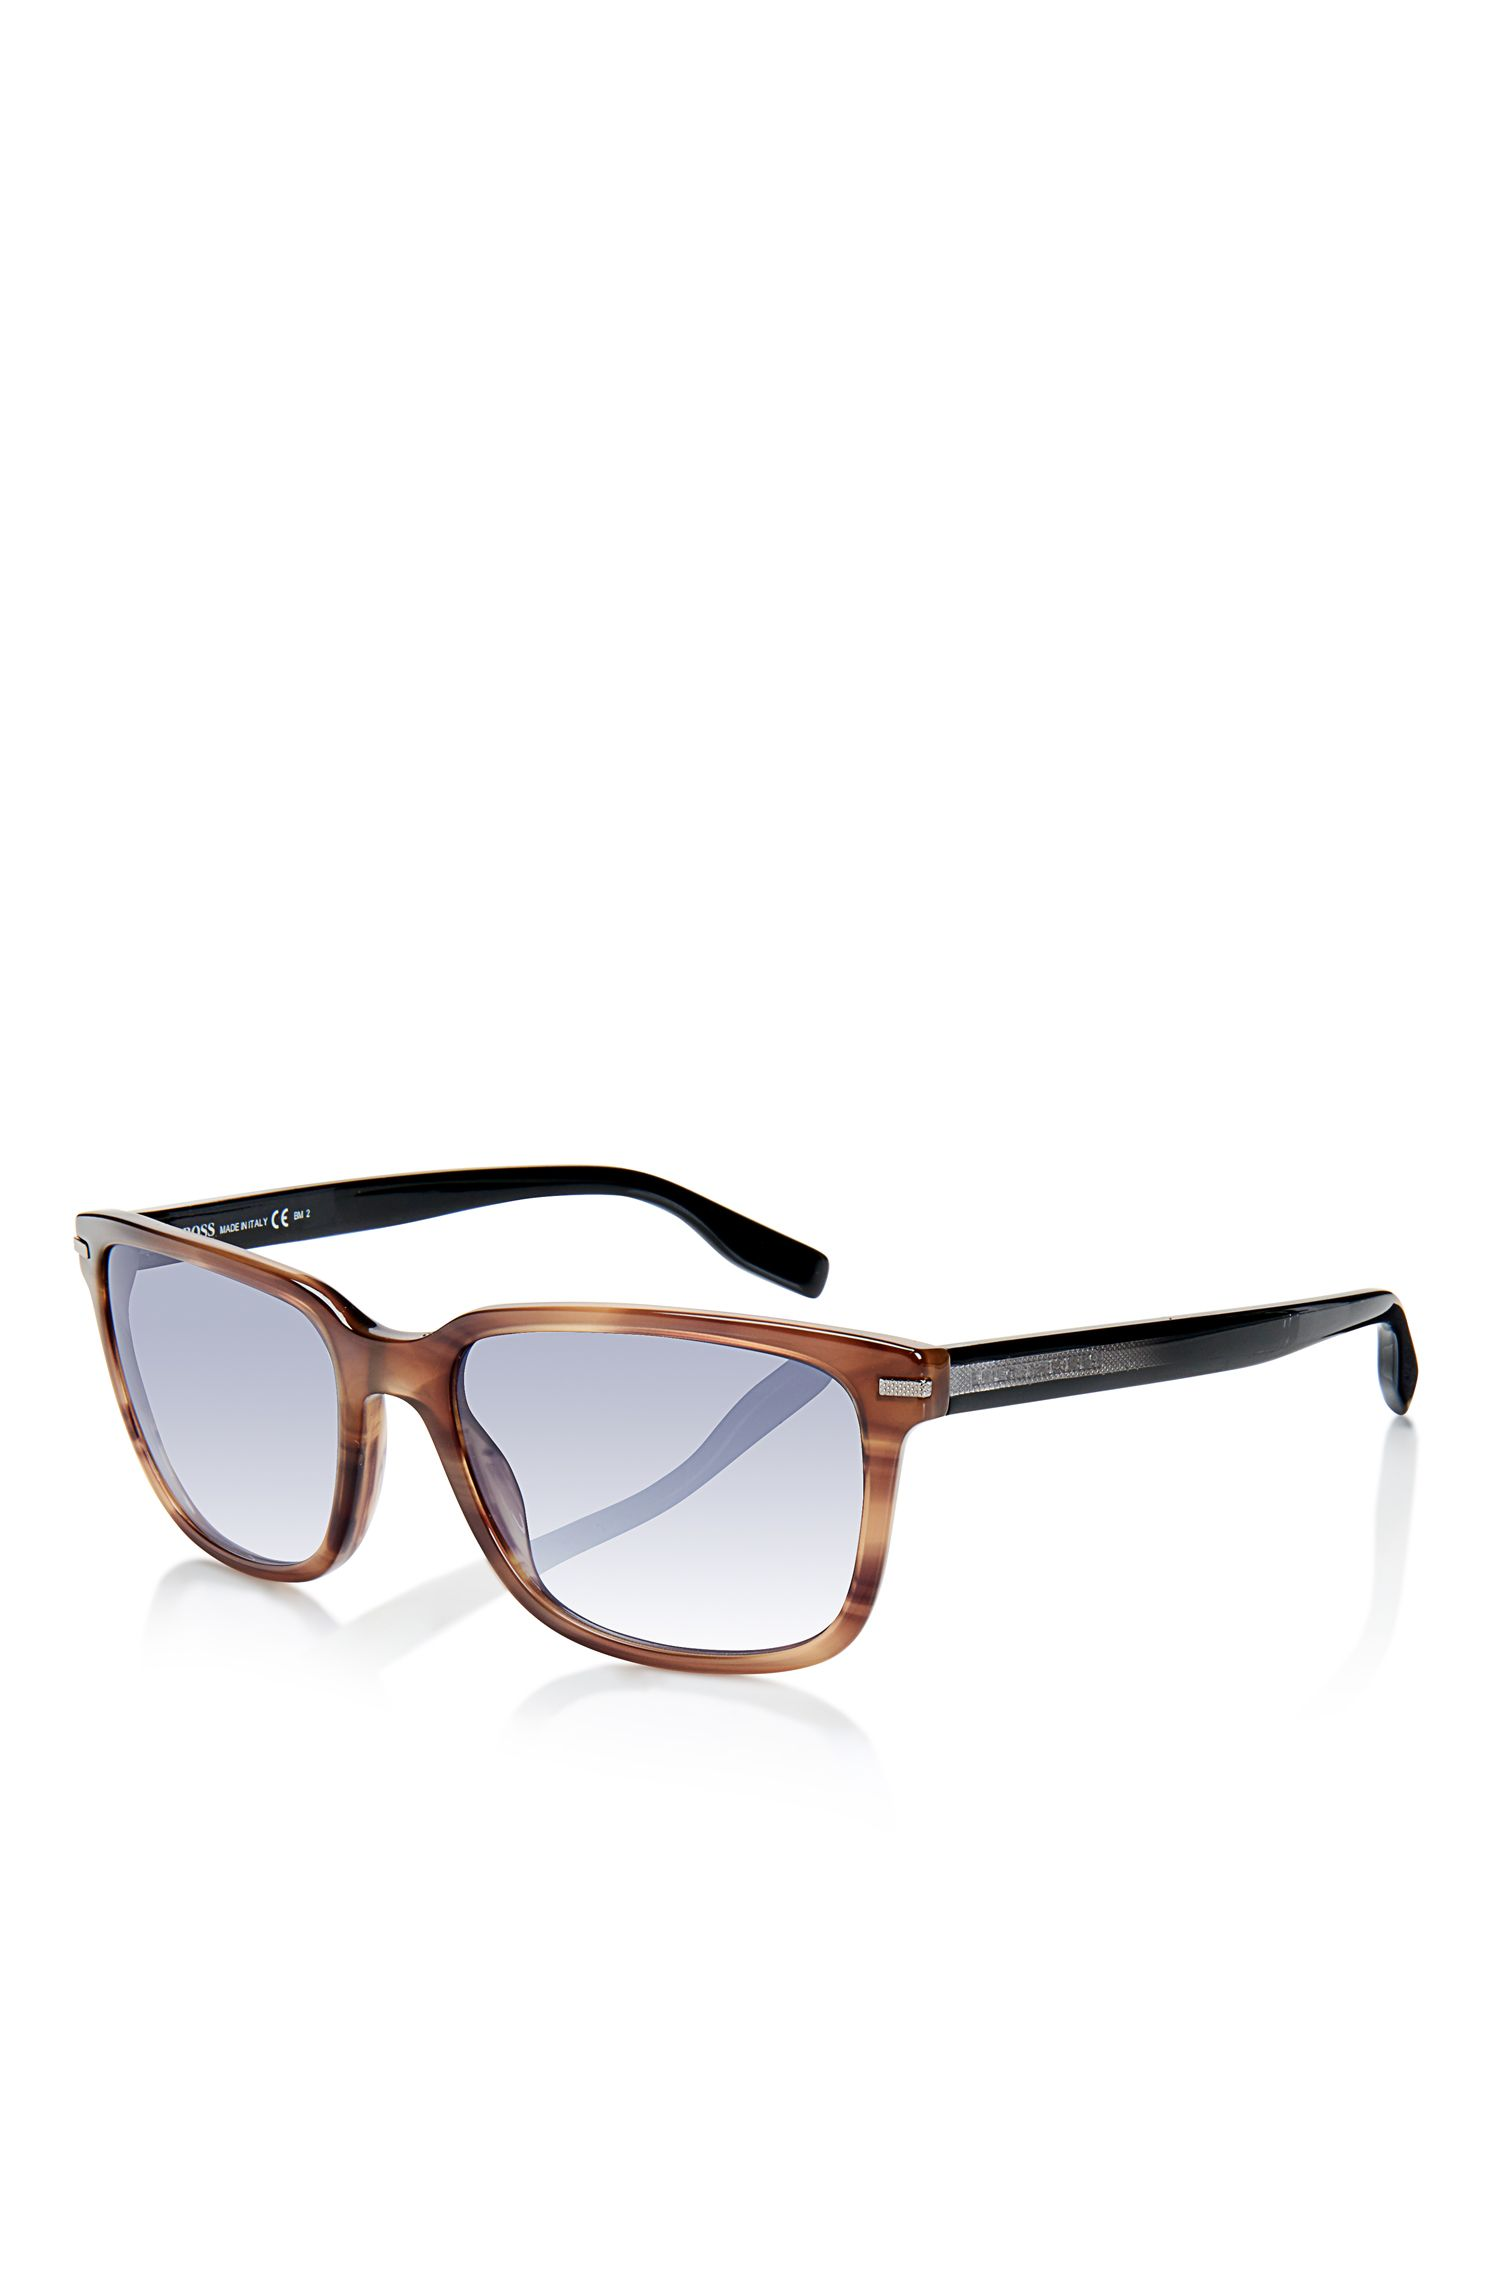 Grey Gradient Lens Sunglasses | BOSS 0623/S